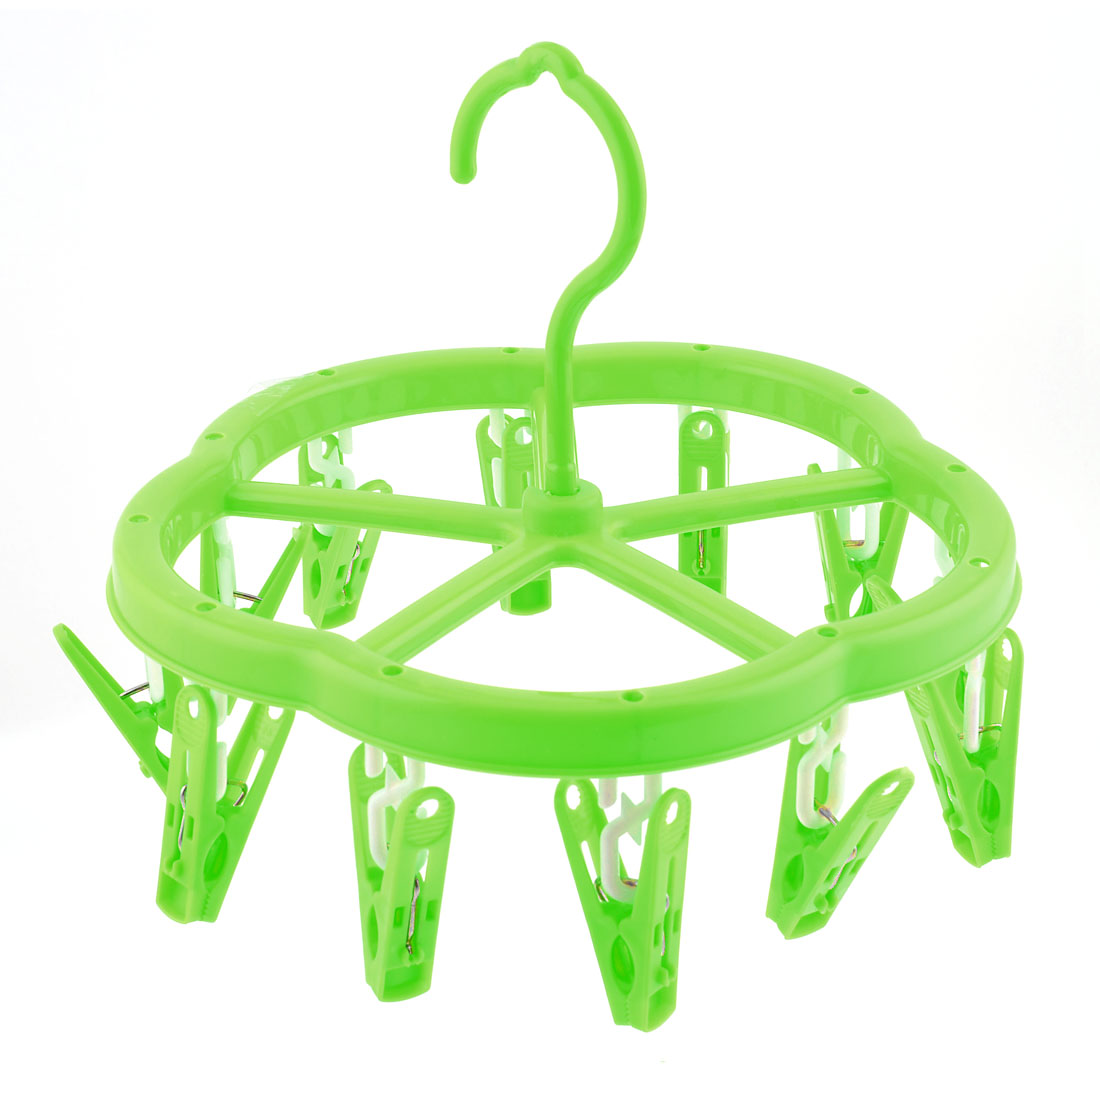 Green Plastic 12 Clamps Cloth Socks Gloves Rotatable Clotheshorse Drying Rack